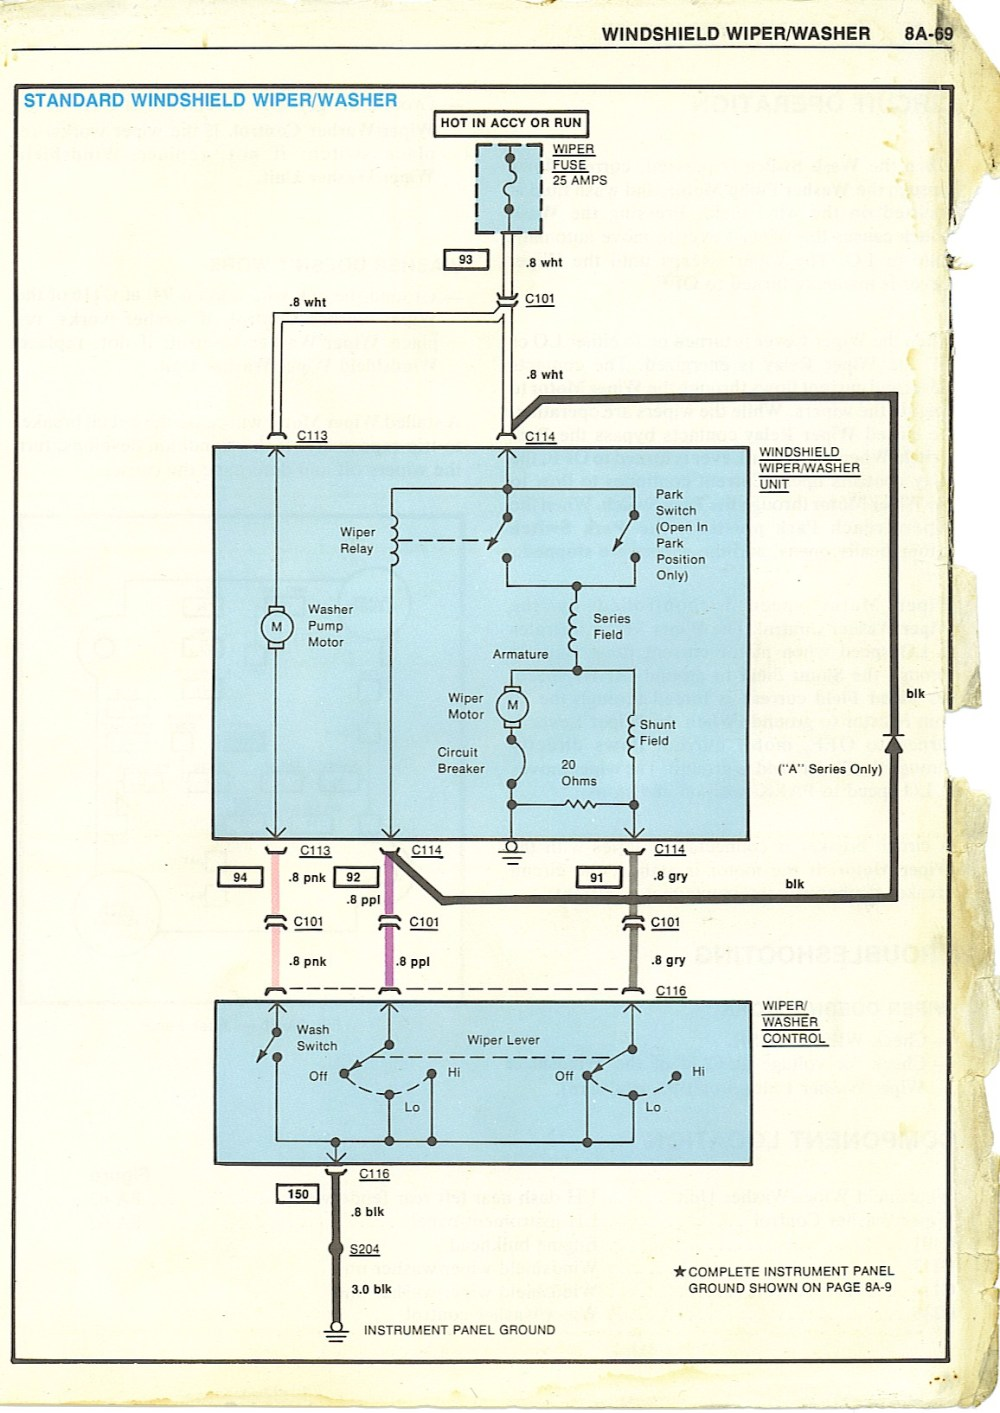 medium resolution of 87 chevy monte carlo wiring diagram schematic wiring library chevy impala belt diagram moreover 1987 chevy monte carlo ss aerocoupe